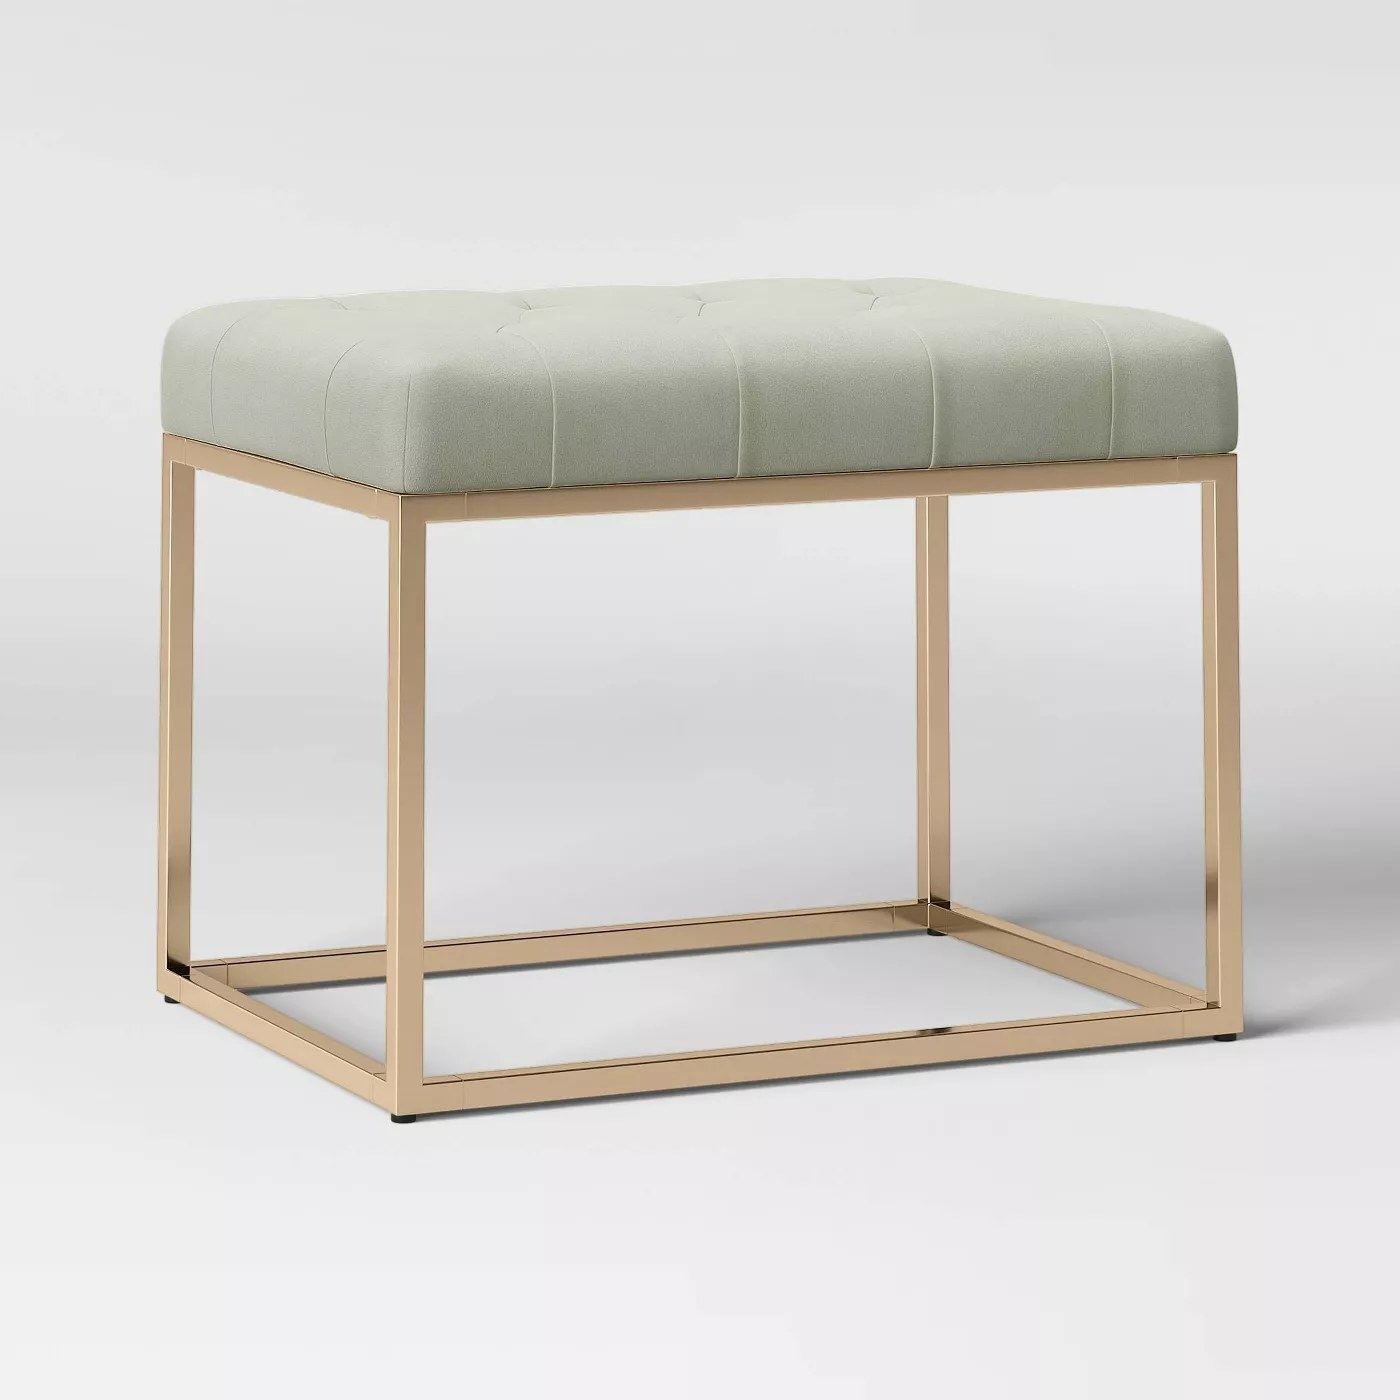 The leather ottoman bench with gold legs